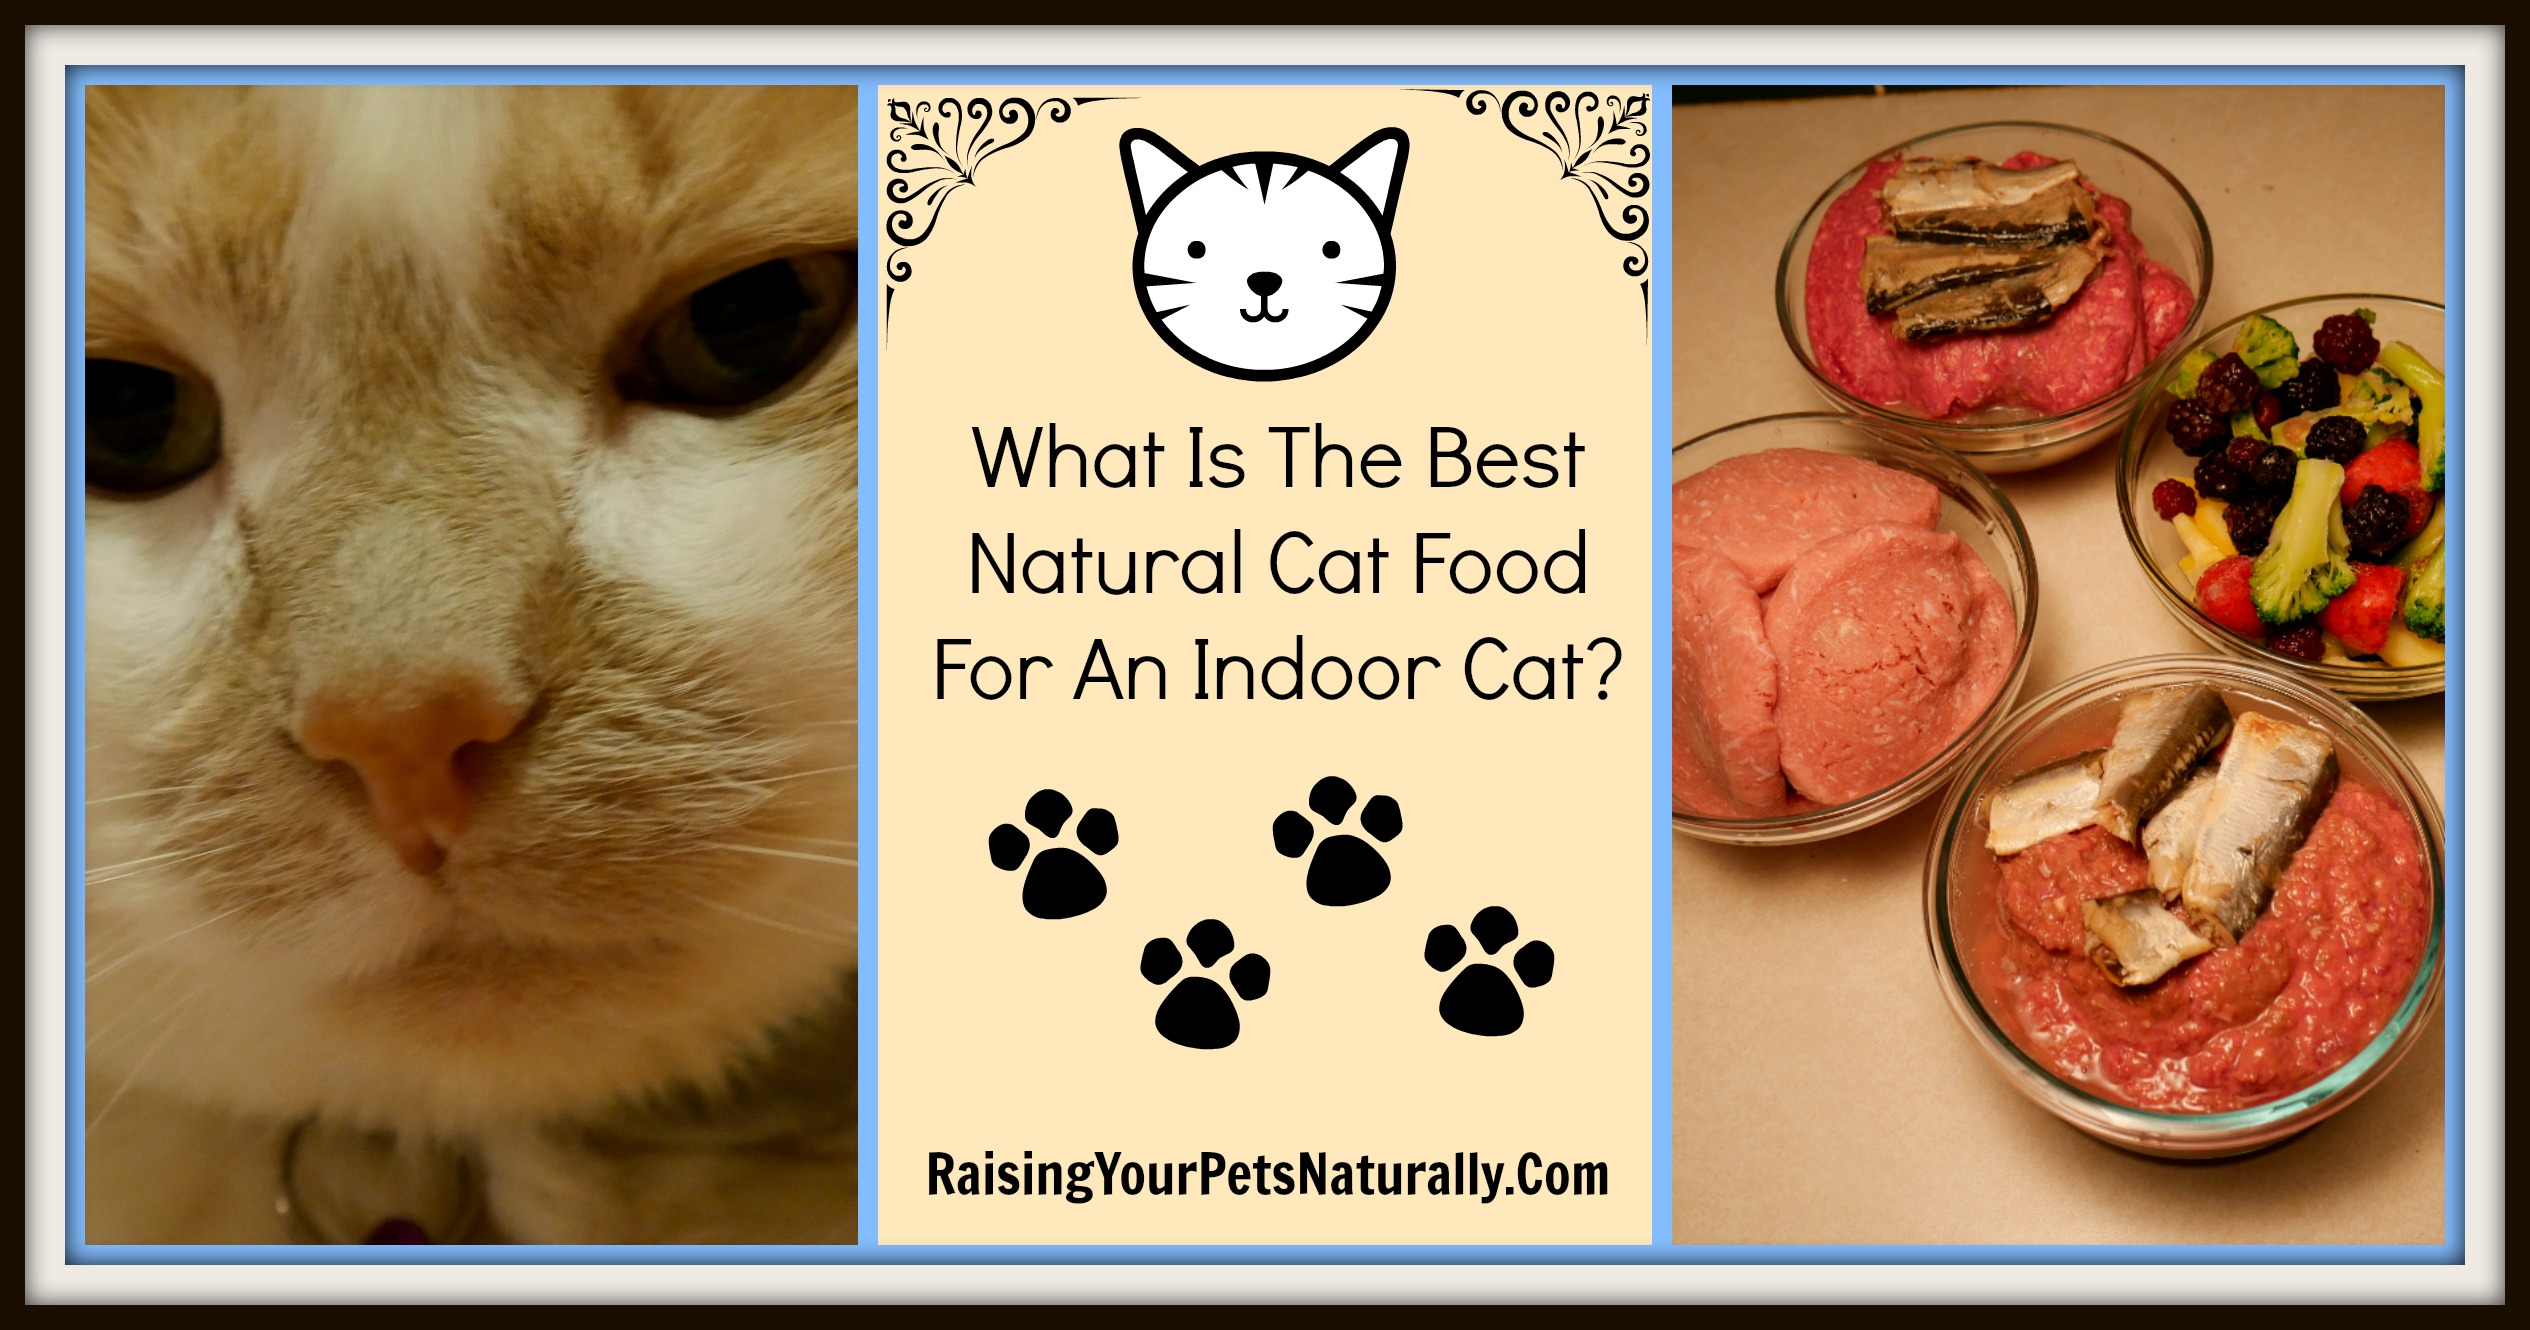 What's the best grain-free dry cat food brand? There isn't one. Dry cat food is by nature, well, dry. Cats, dogs, people… we all need a lot of moisture in our diets. Learn more. #raisingyourpetsnaturally